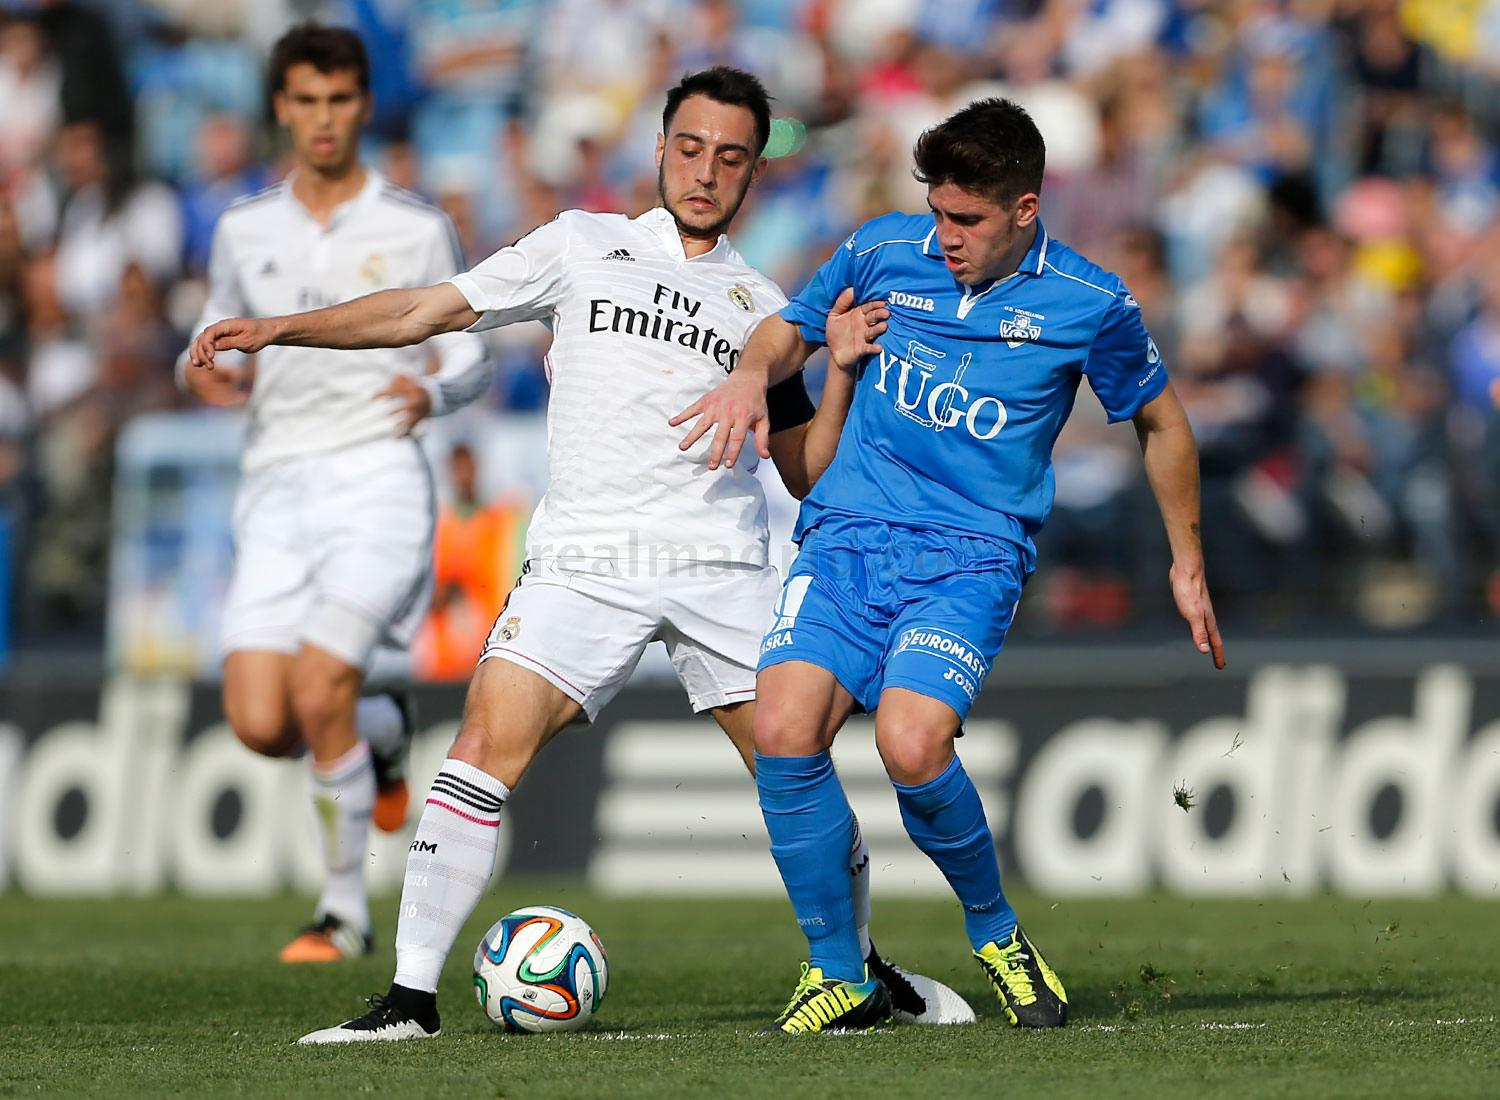 Real Madrid - Real Madrid Castilla - Yugo Socuéllamos - 08-03-2015